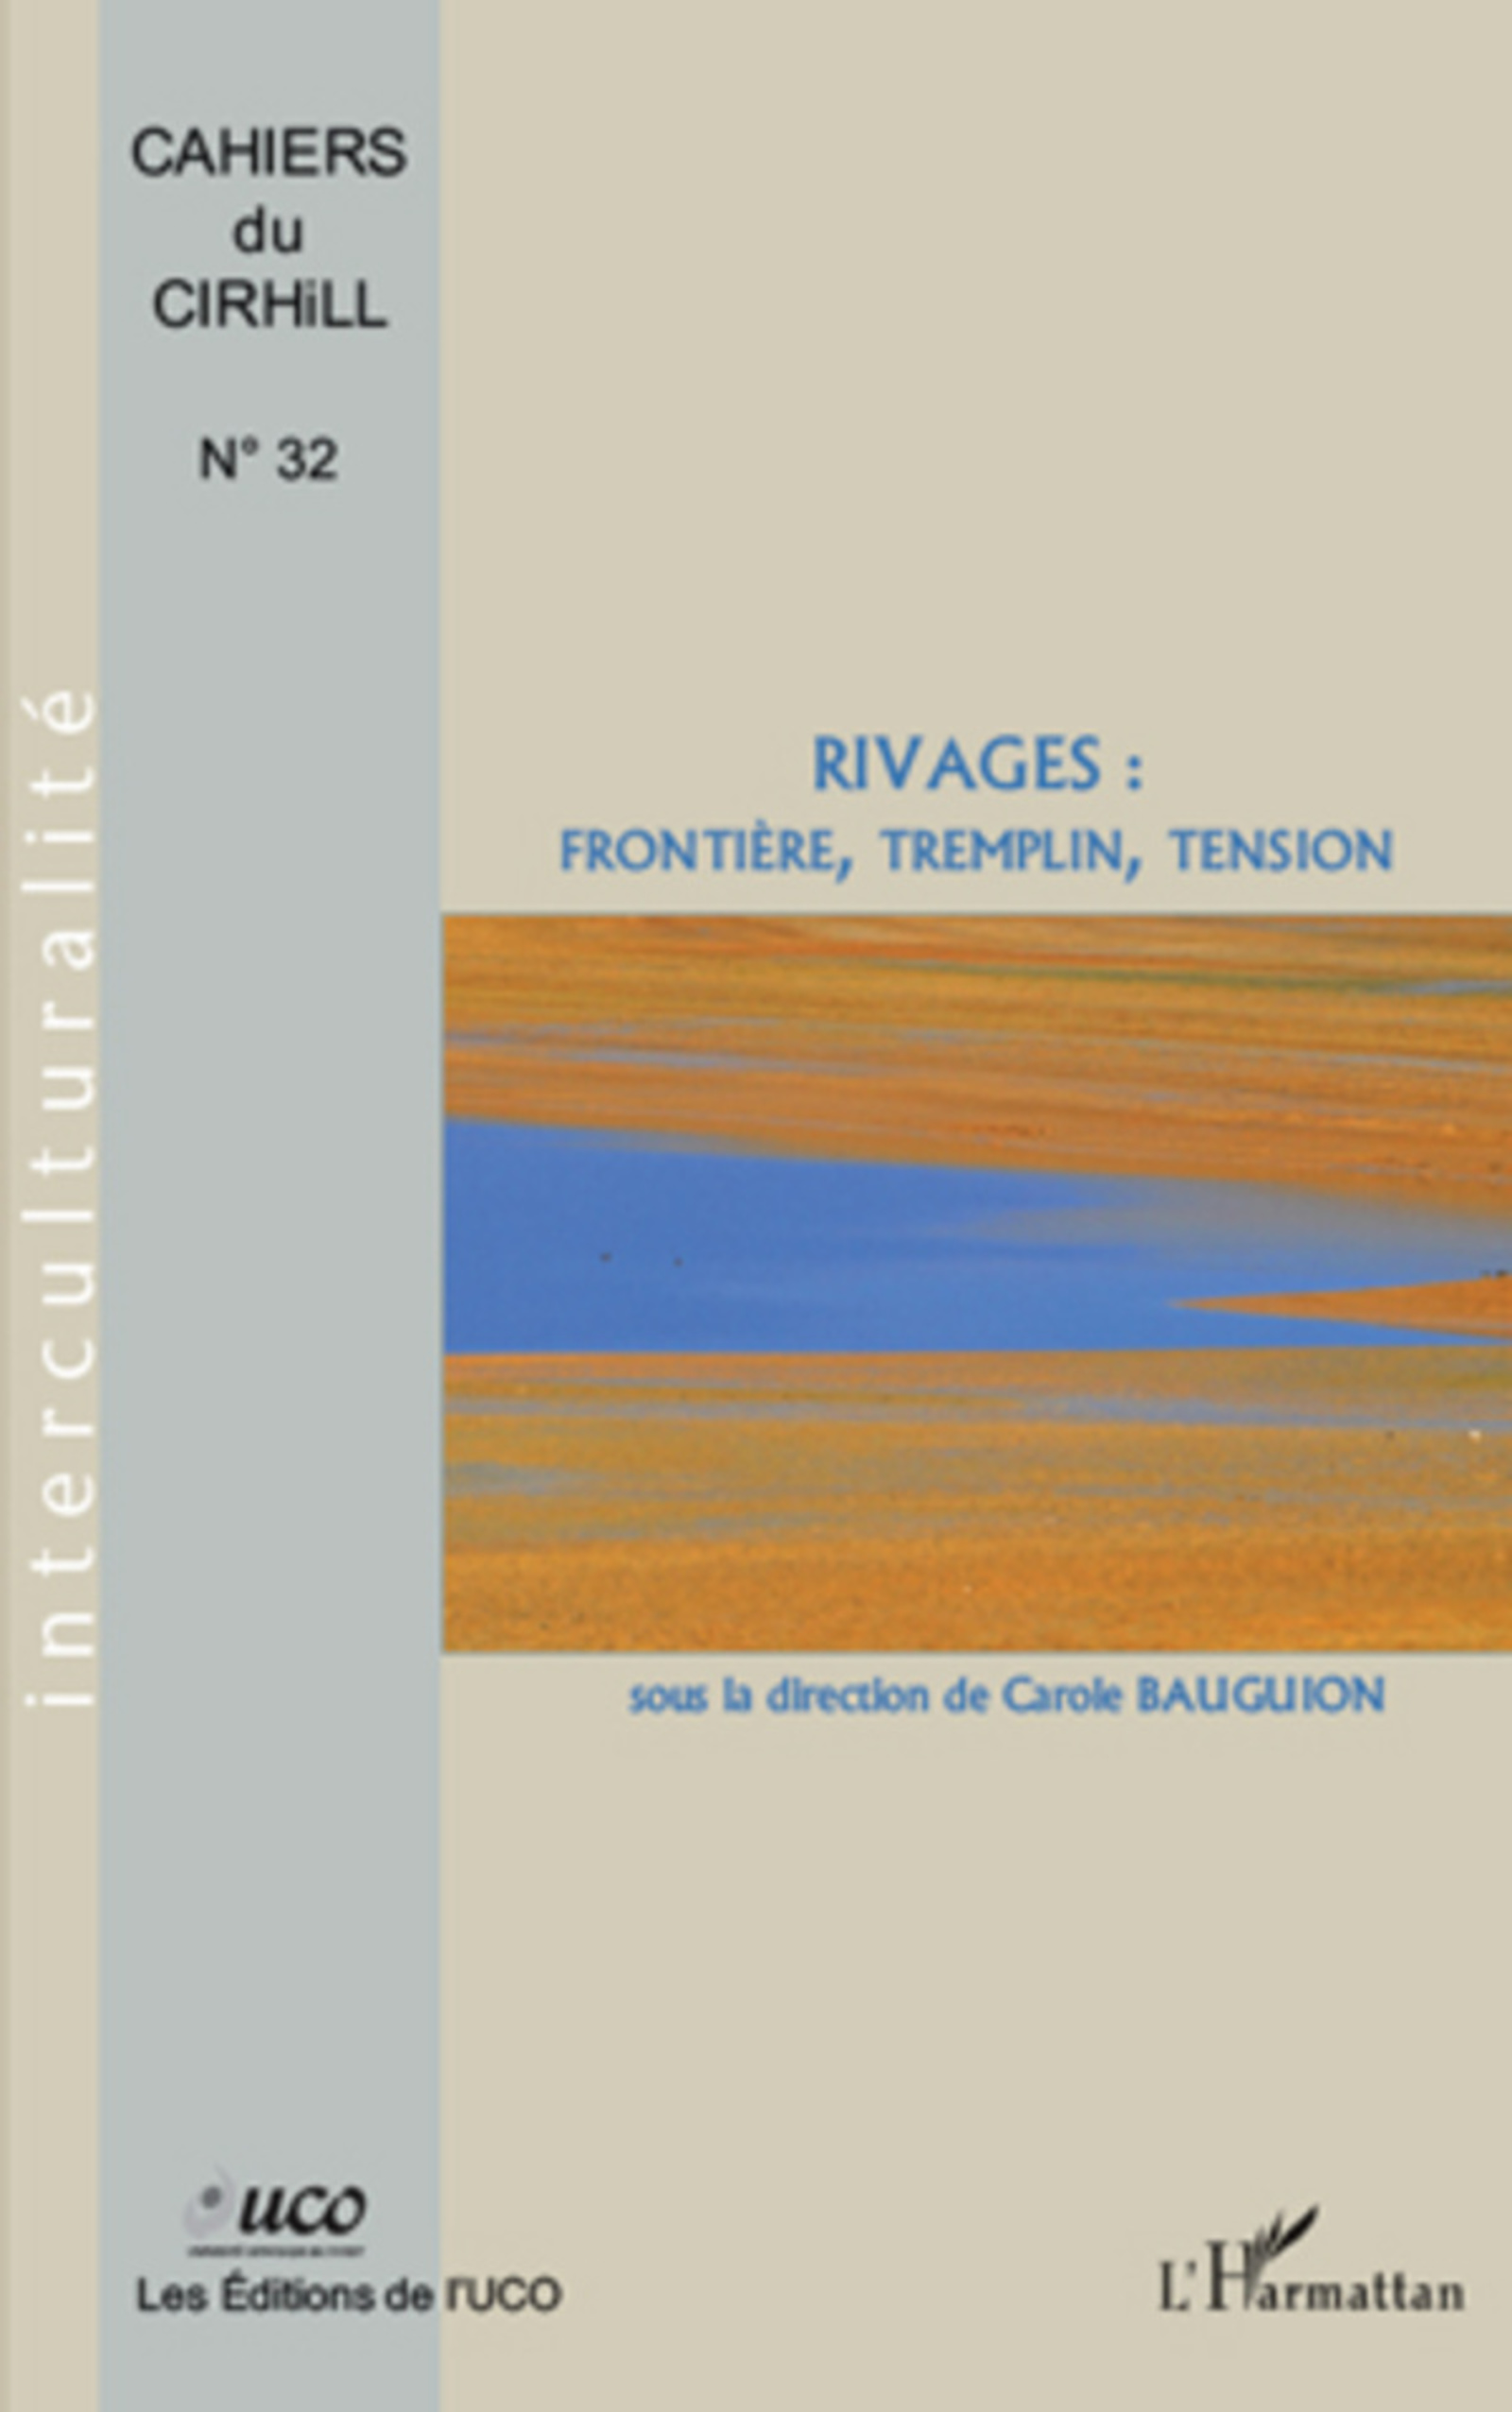 RIVAGES :